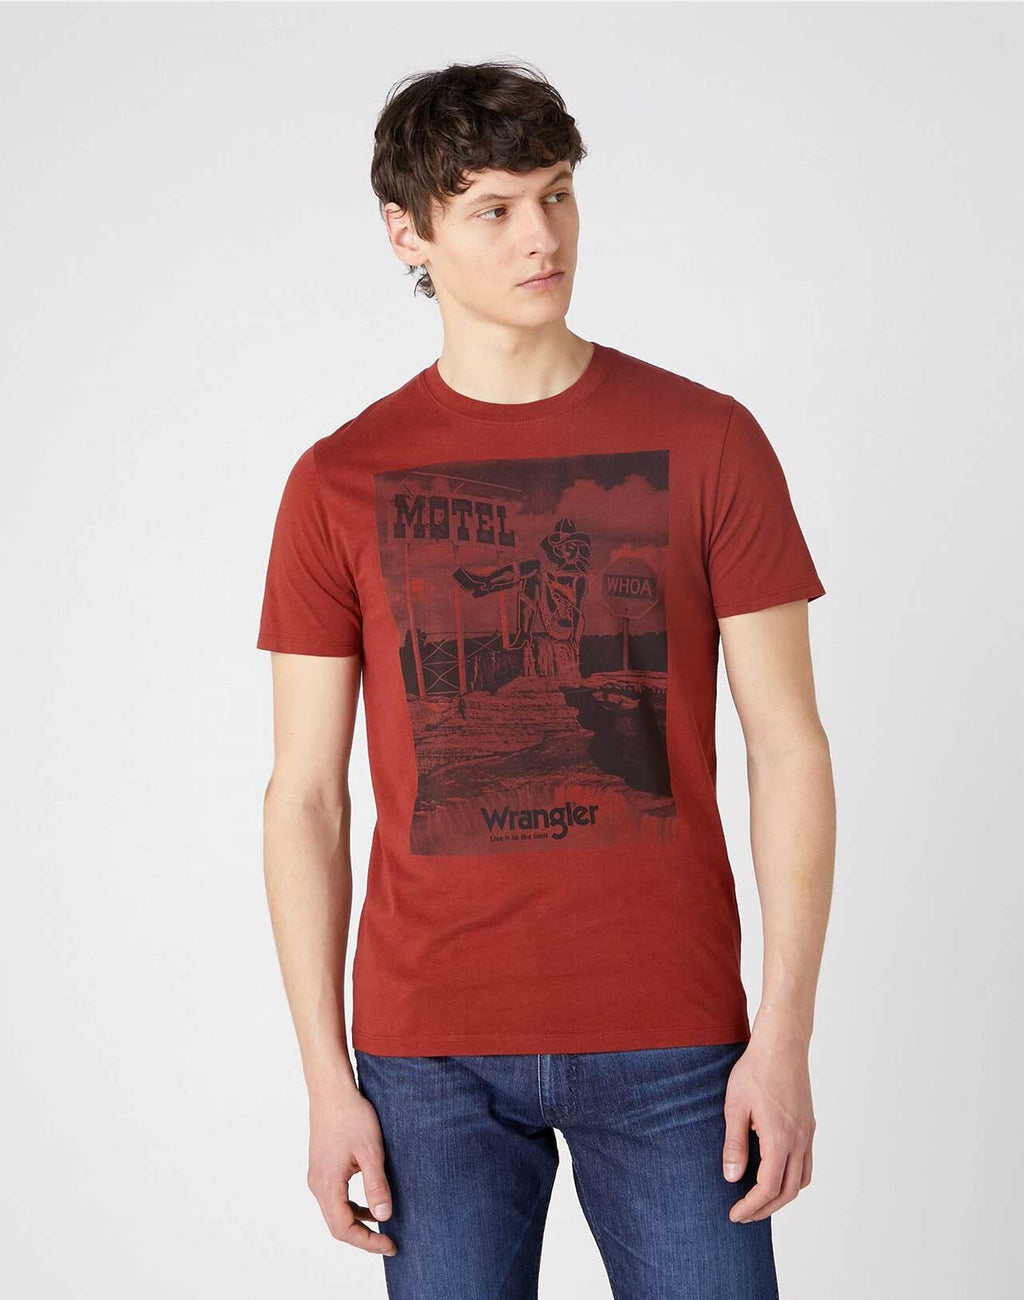 T-shirt Motel Rusty Brown Wrangler  porté